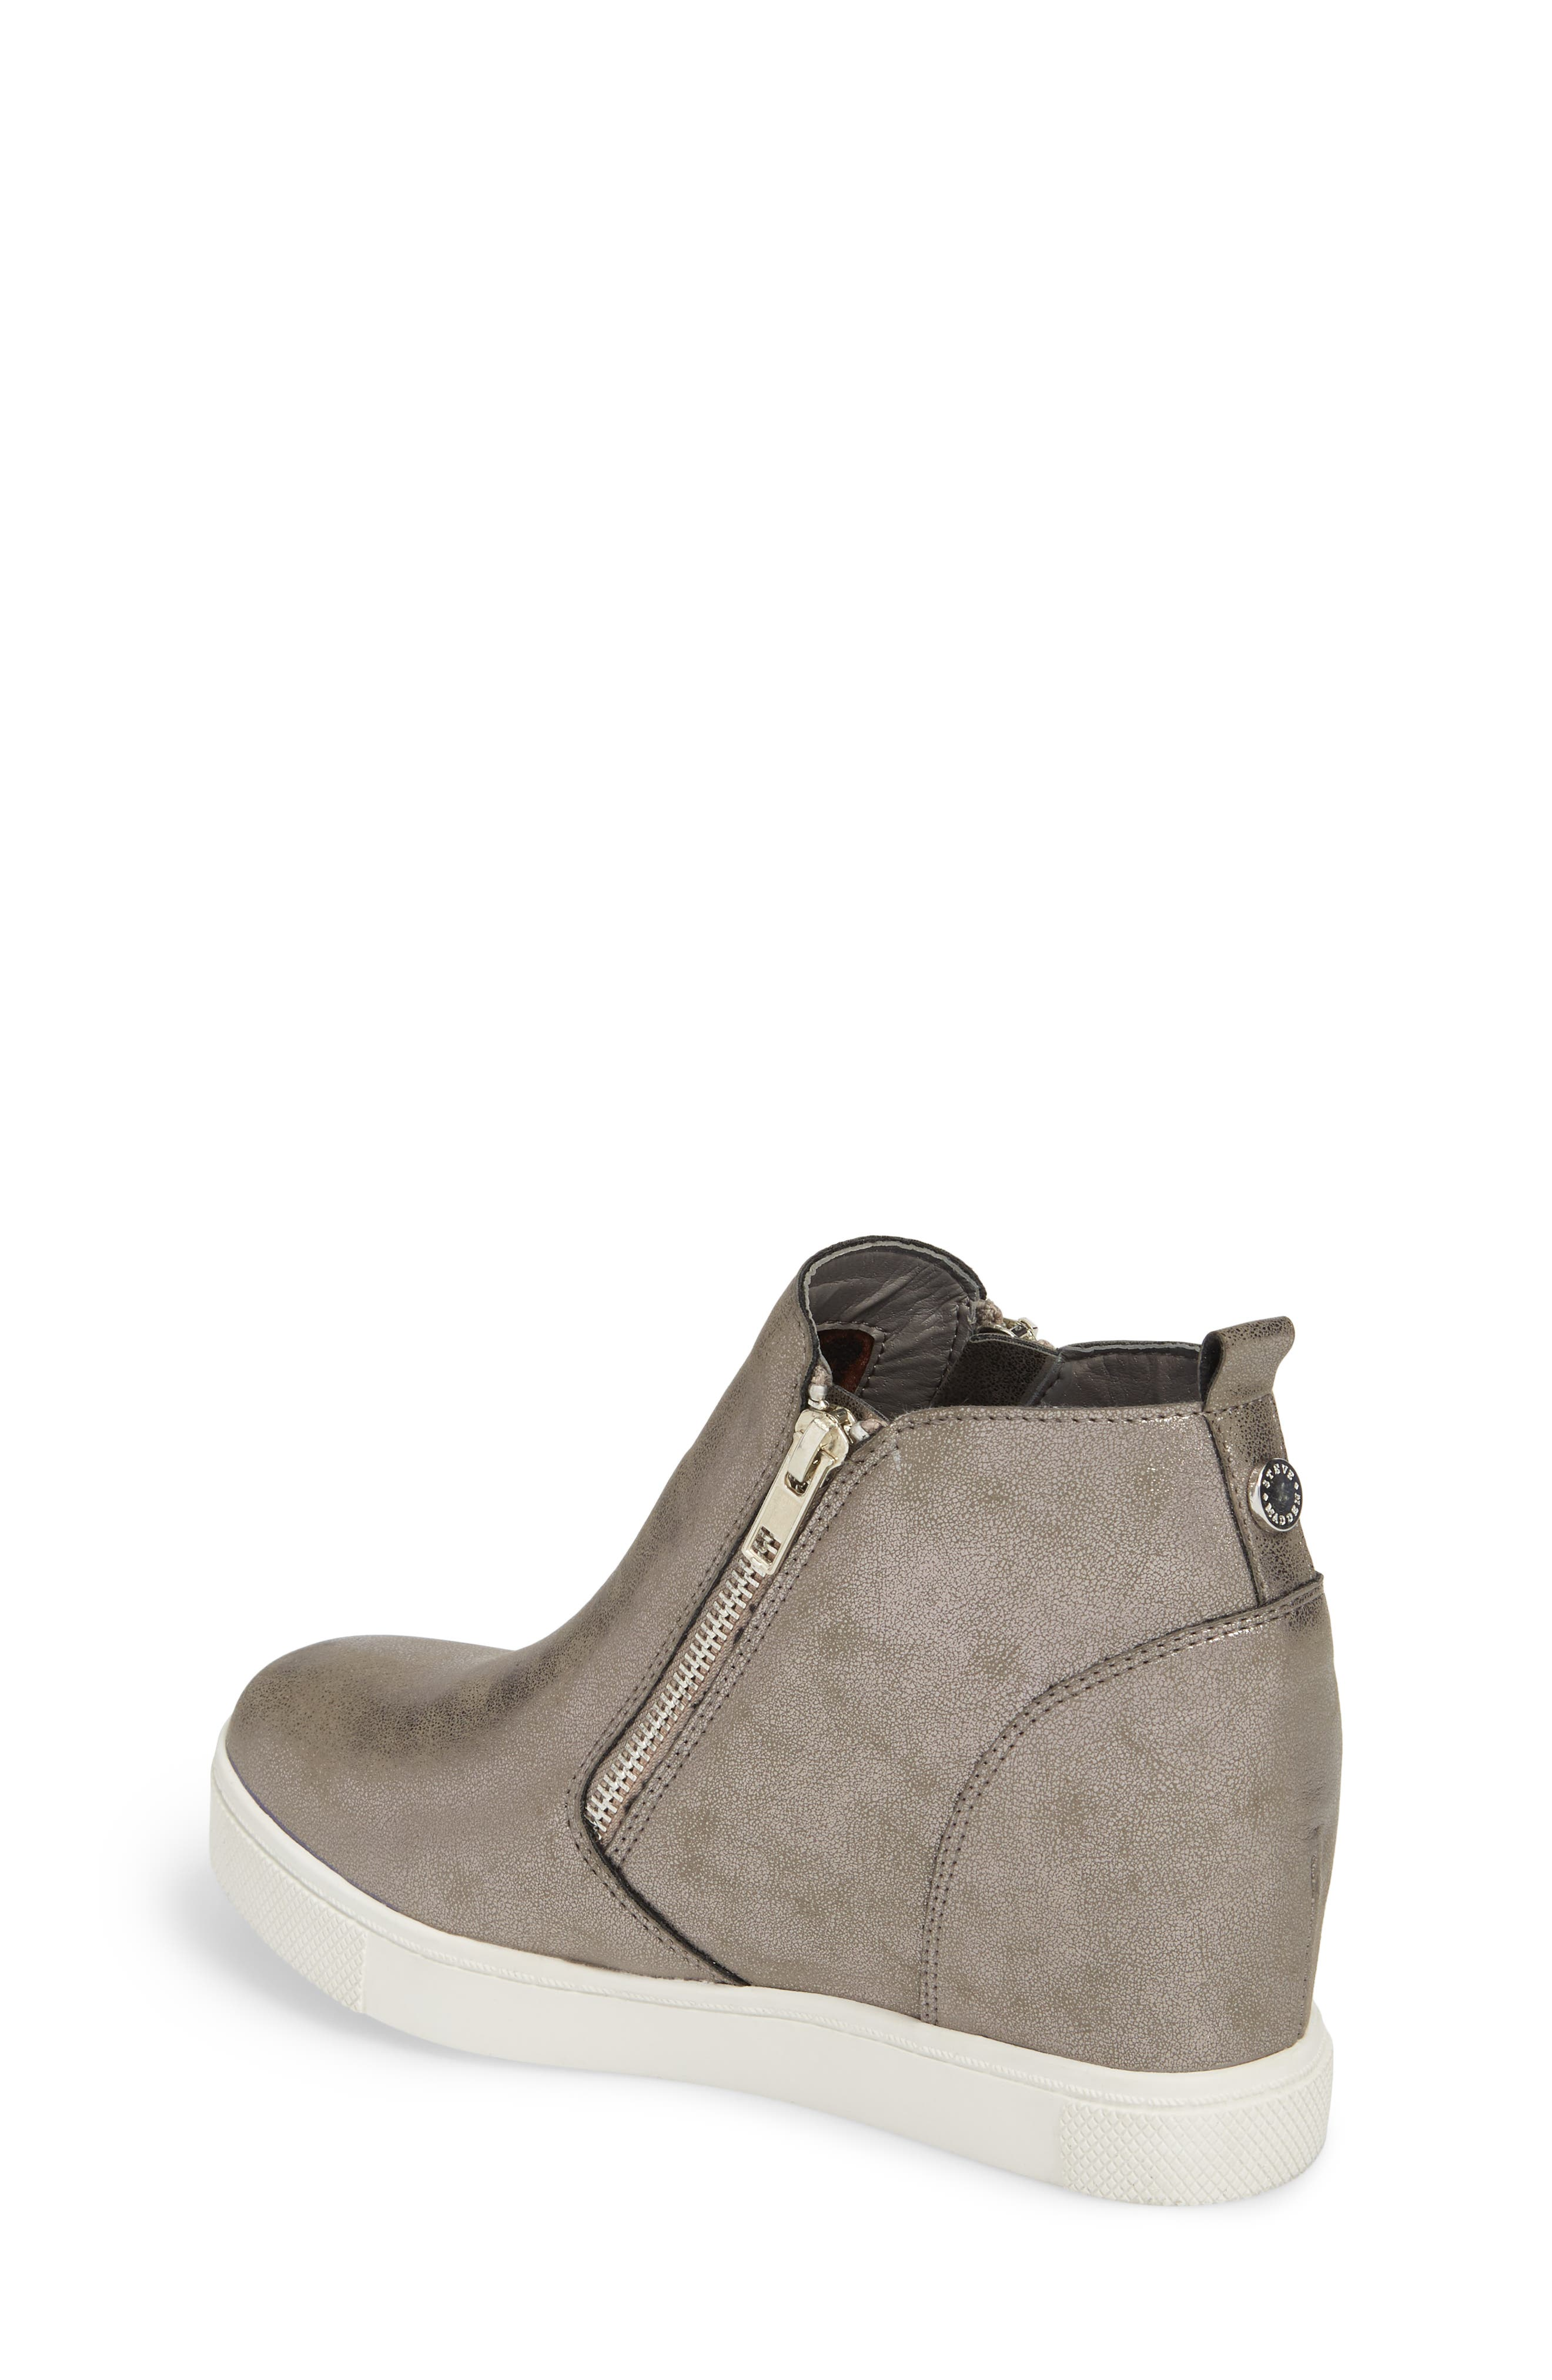 Wedgie Hidden Wedge Sneaker,                             Alternate thumbnail 2, color,                             GREY